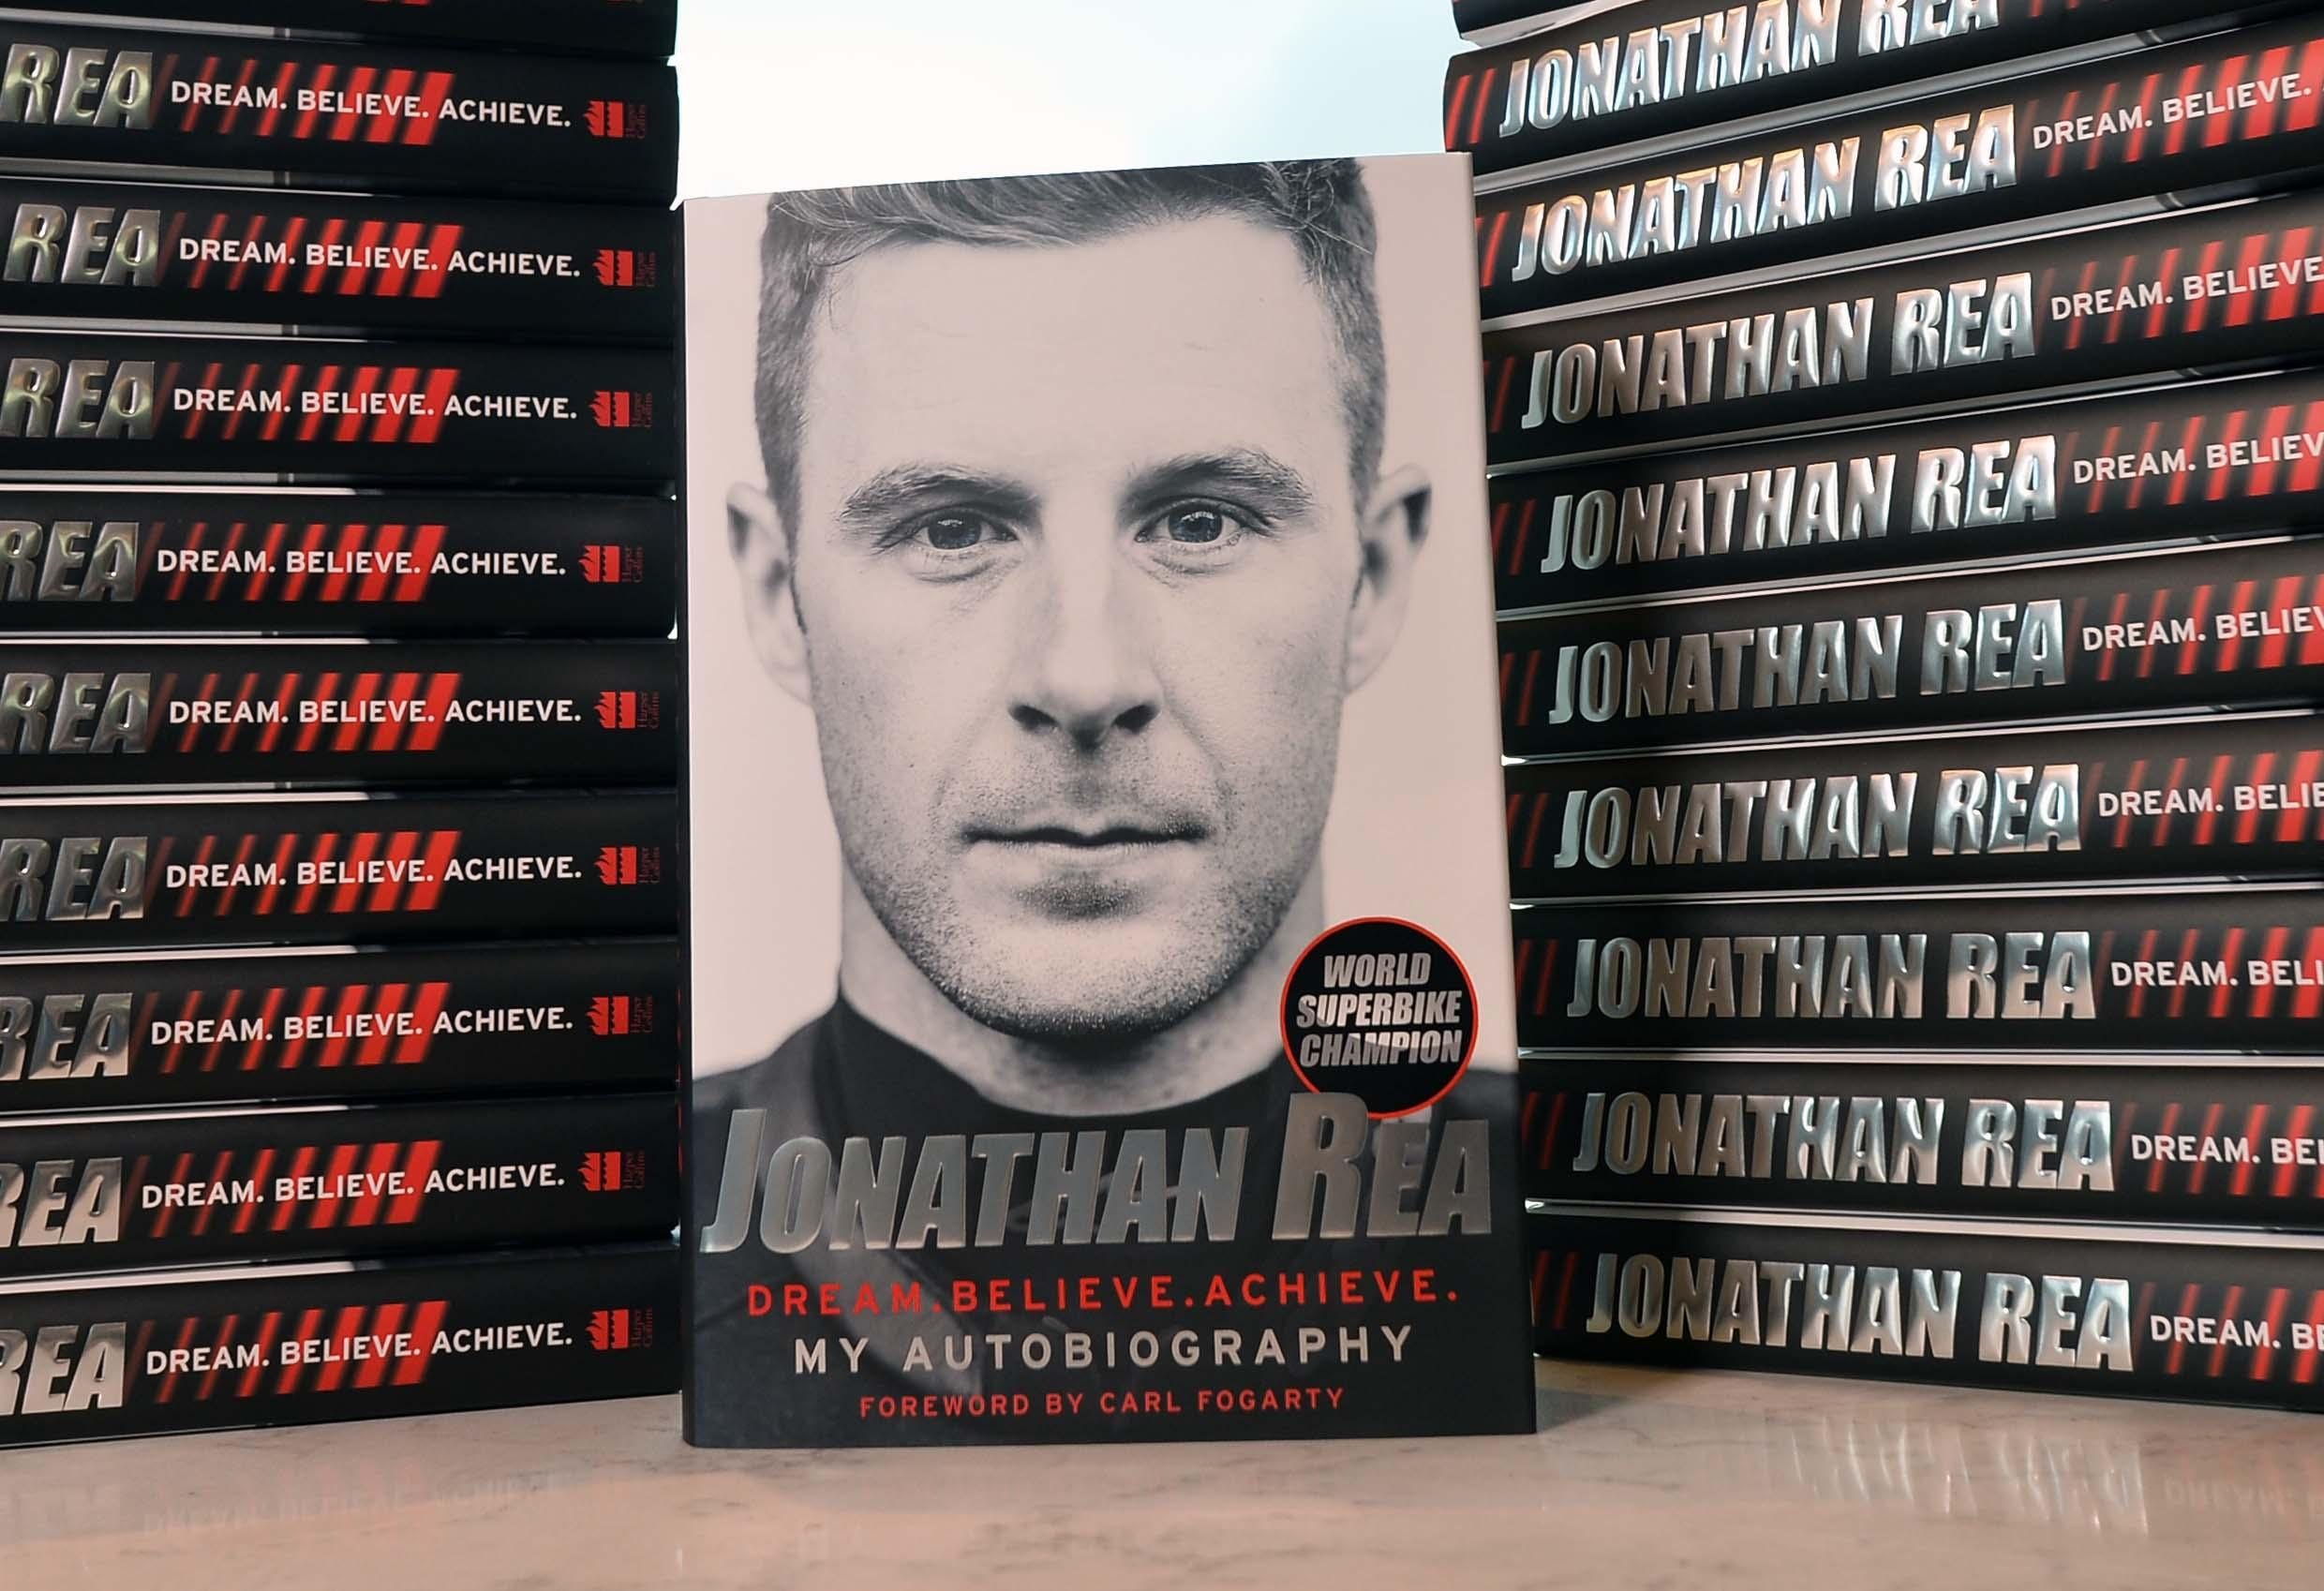 Jonathan Rea has written about his incredible career in his new autobiography